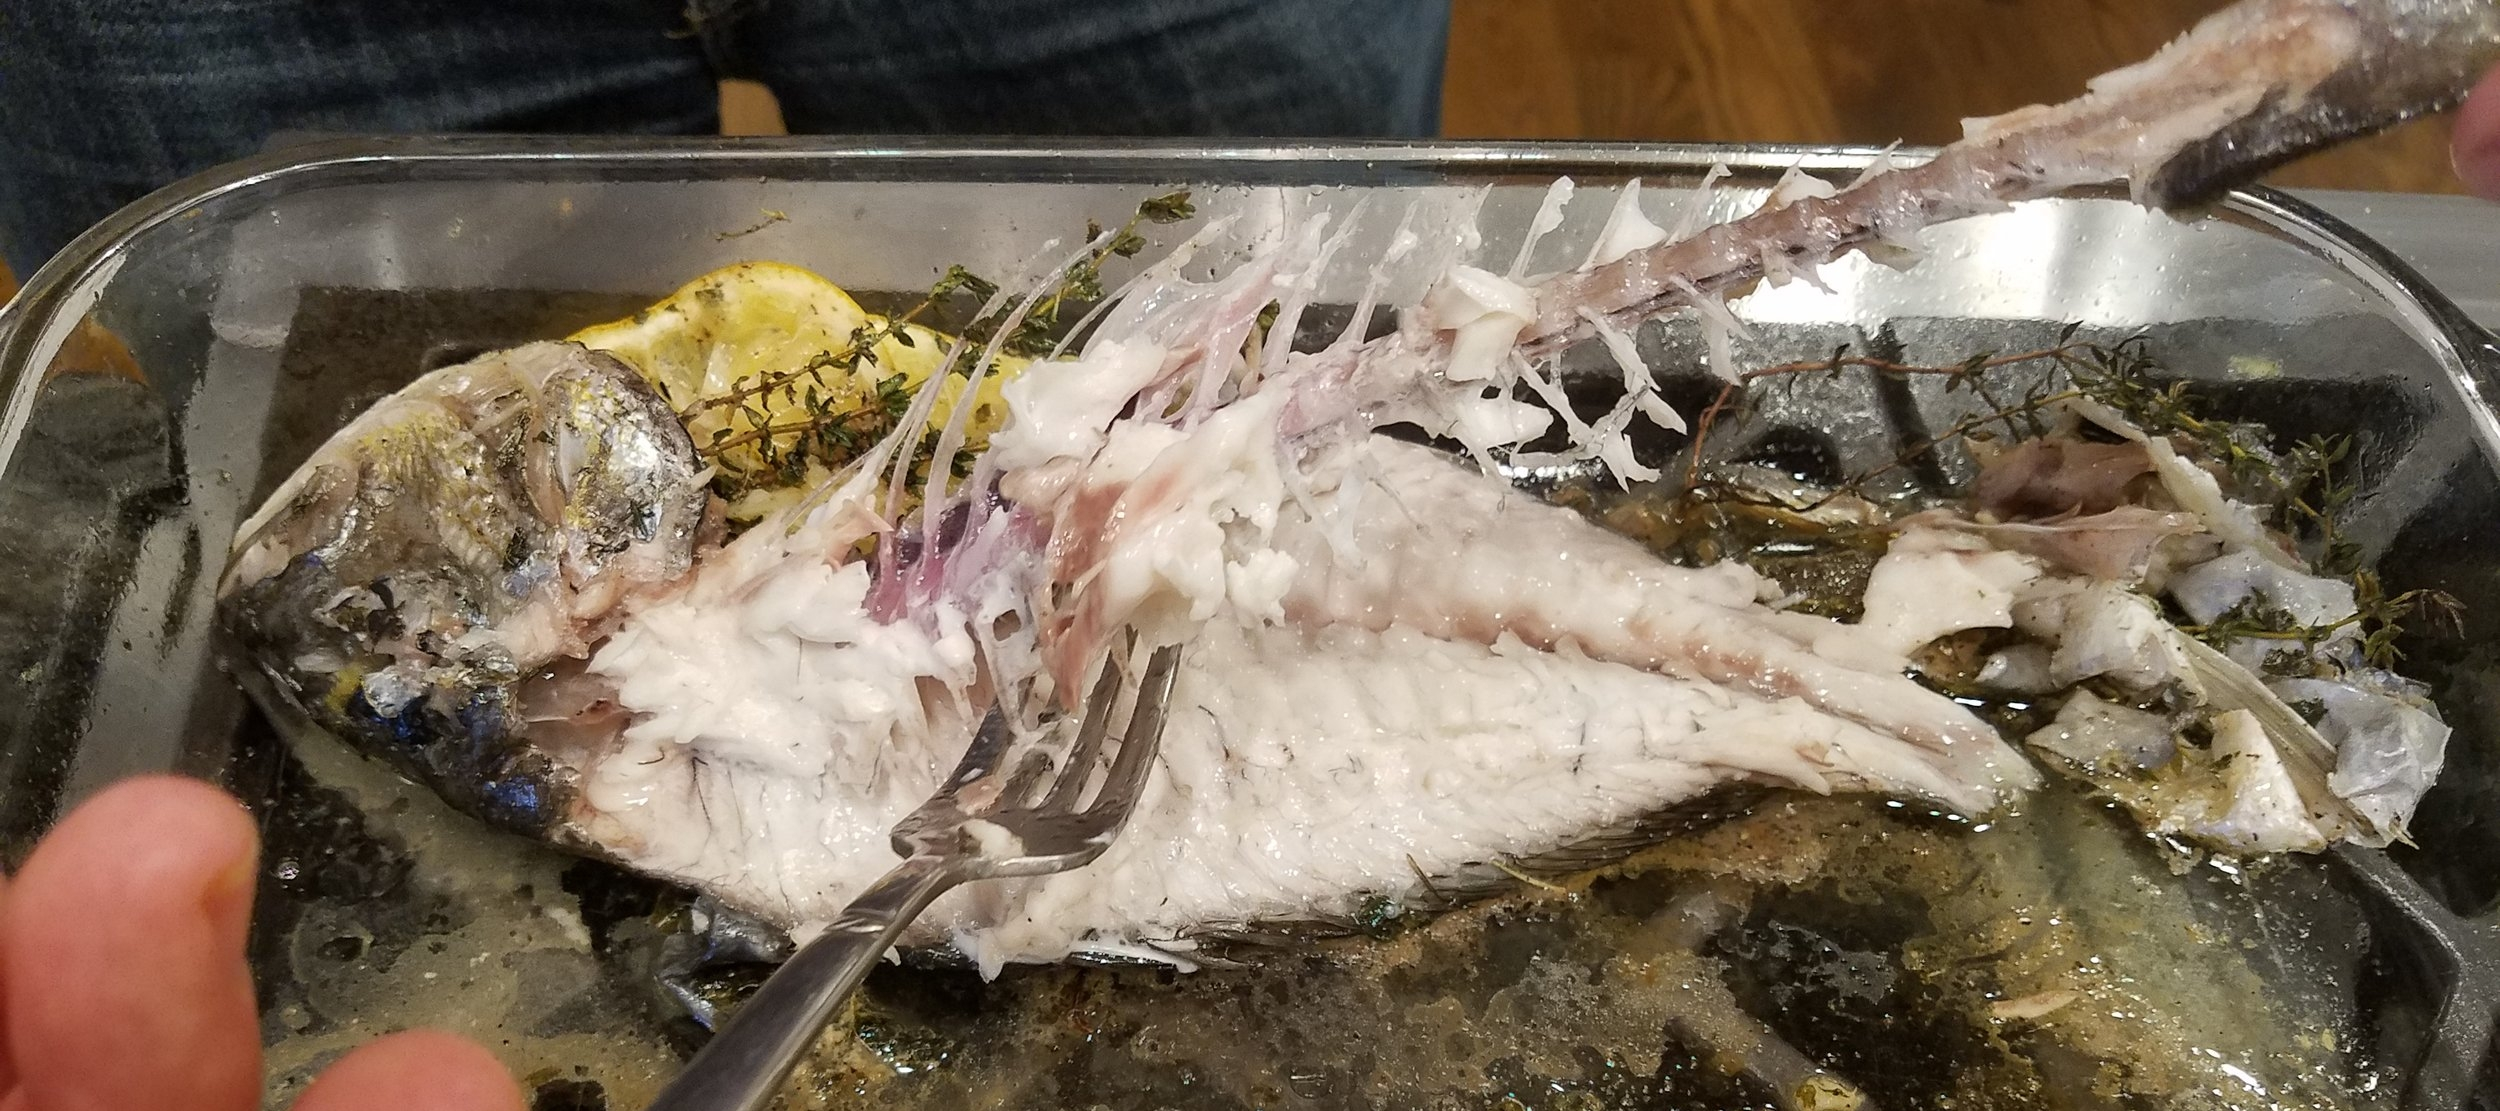 Most of the skeleton should lift out easily, but some bones will probably be left behind.  That is part of the deal when cooking this fish whole.  Look it over thoroughly and chew carefully.